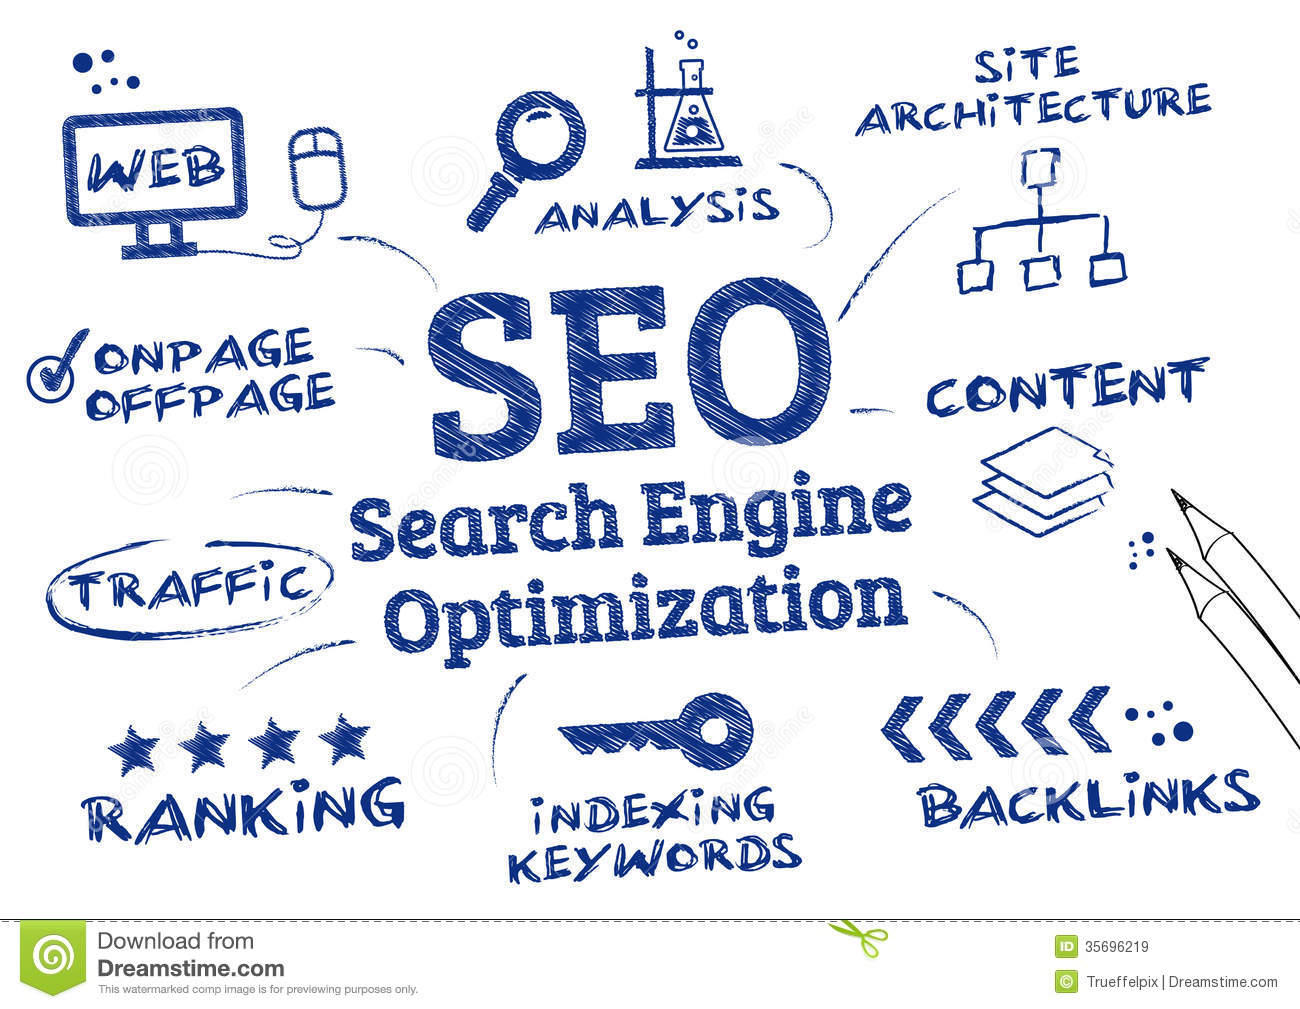 SEO [Search Engine Optimization]